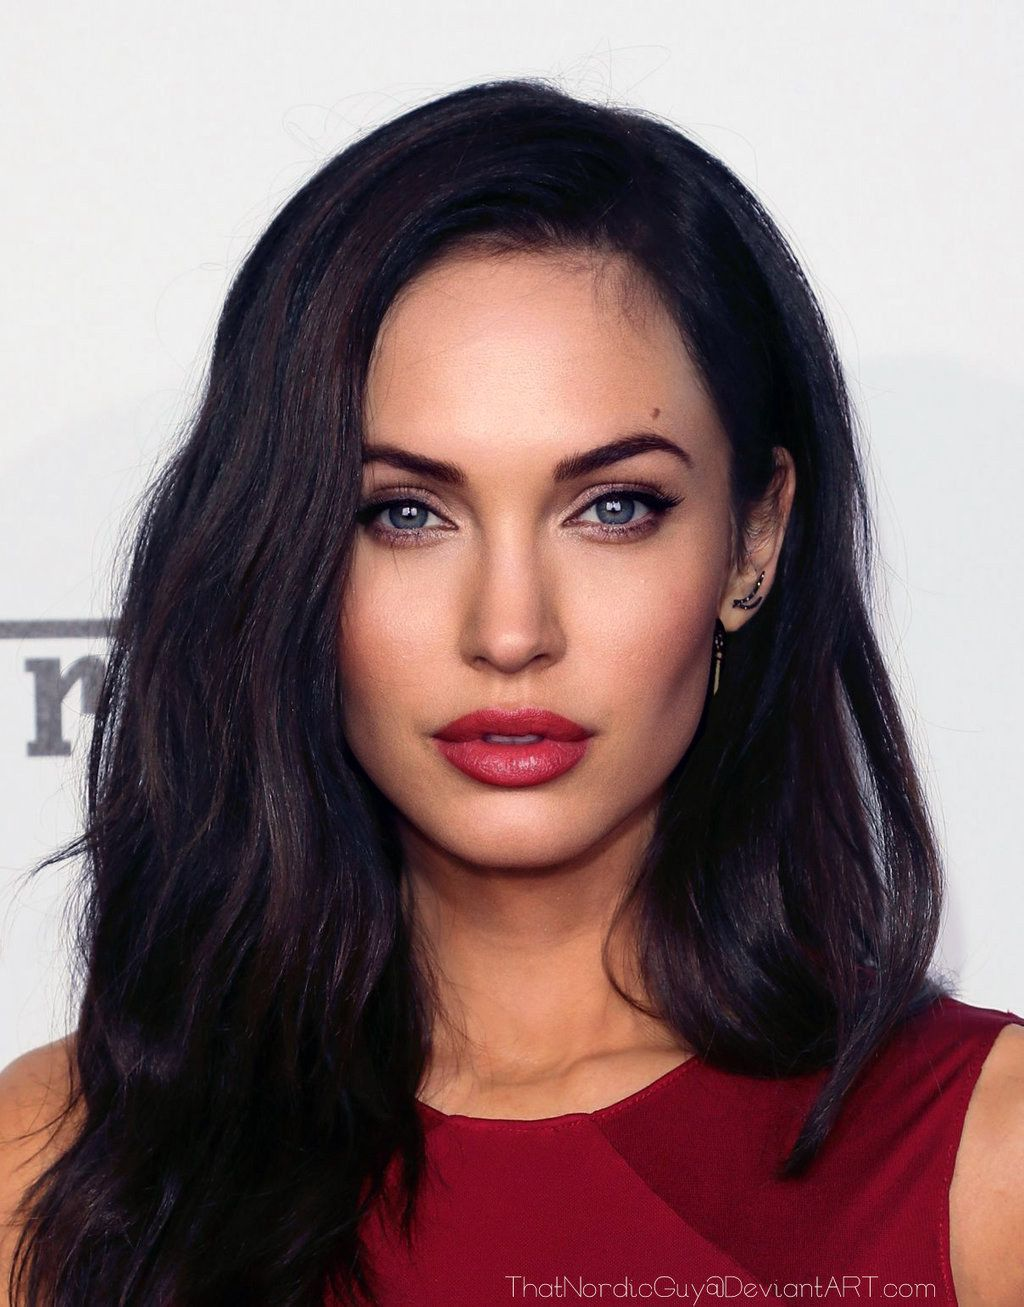 Megan Fox Is the Latest Celeb to Discuss Mommy Guilt